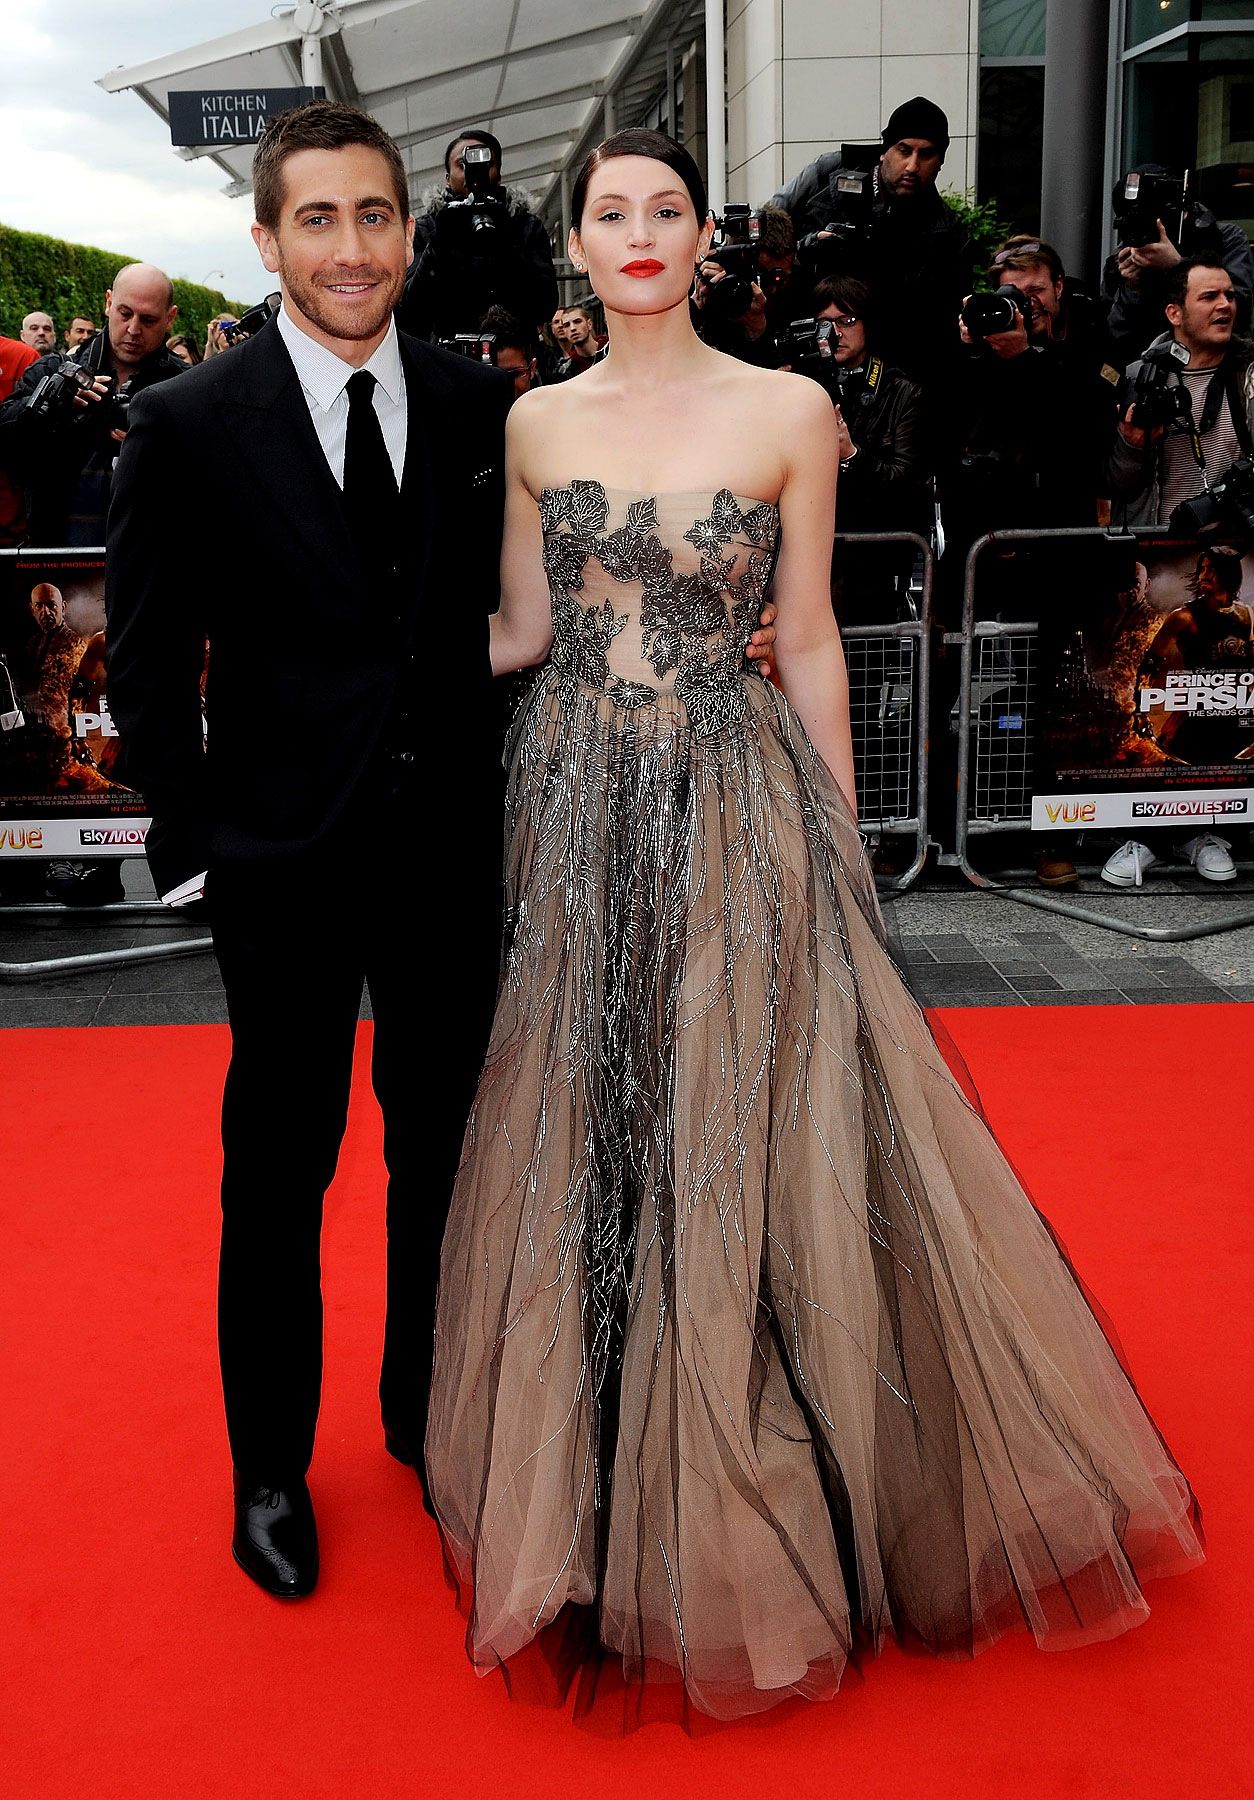 'Prince of Persia' Premiere Brings The Royalty To London (PHOTOS)